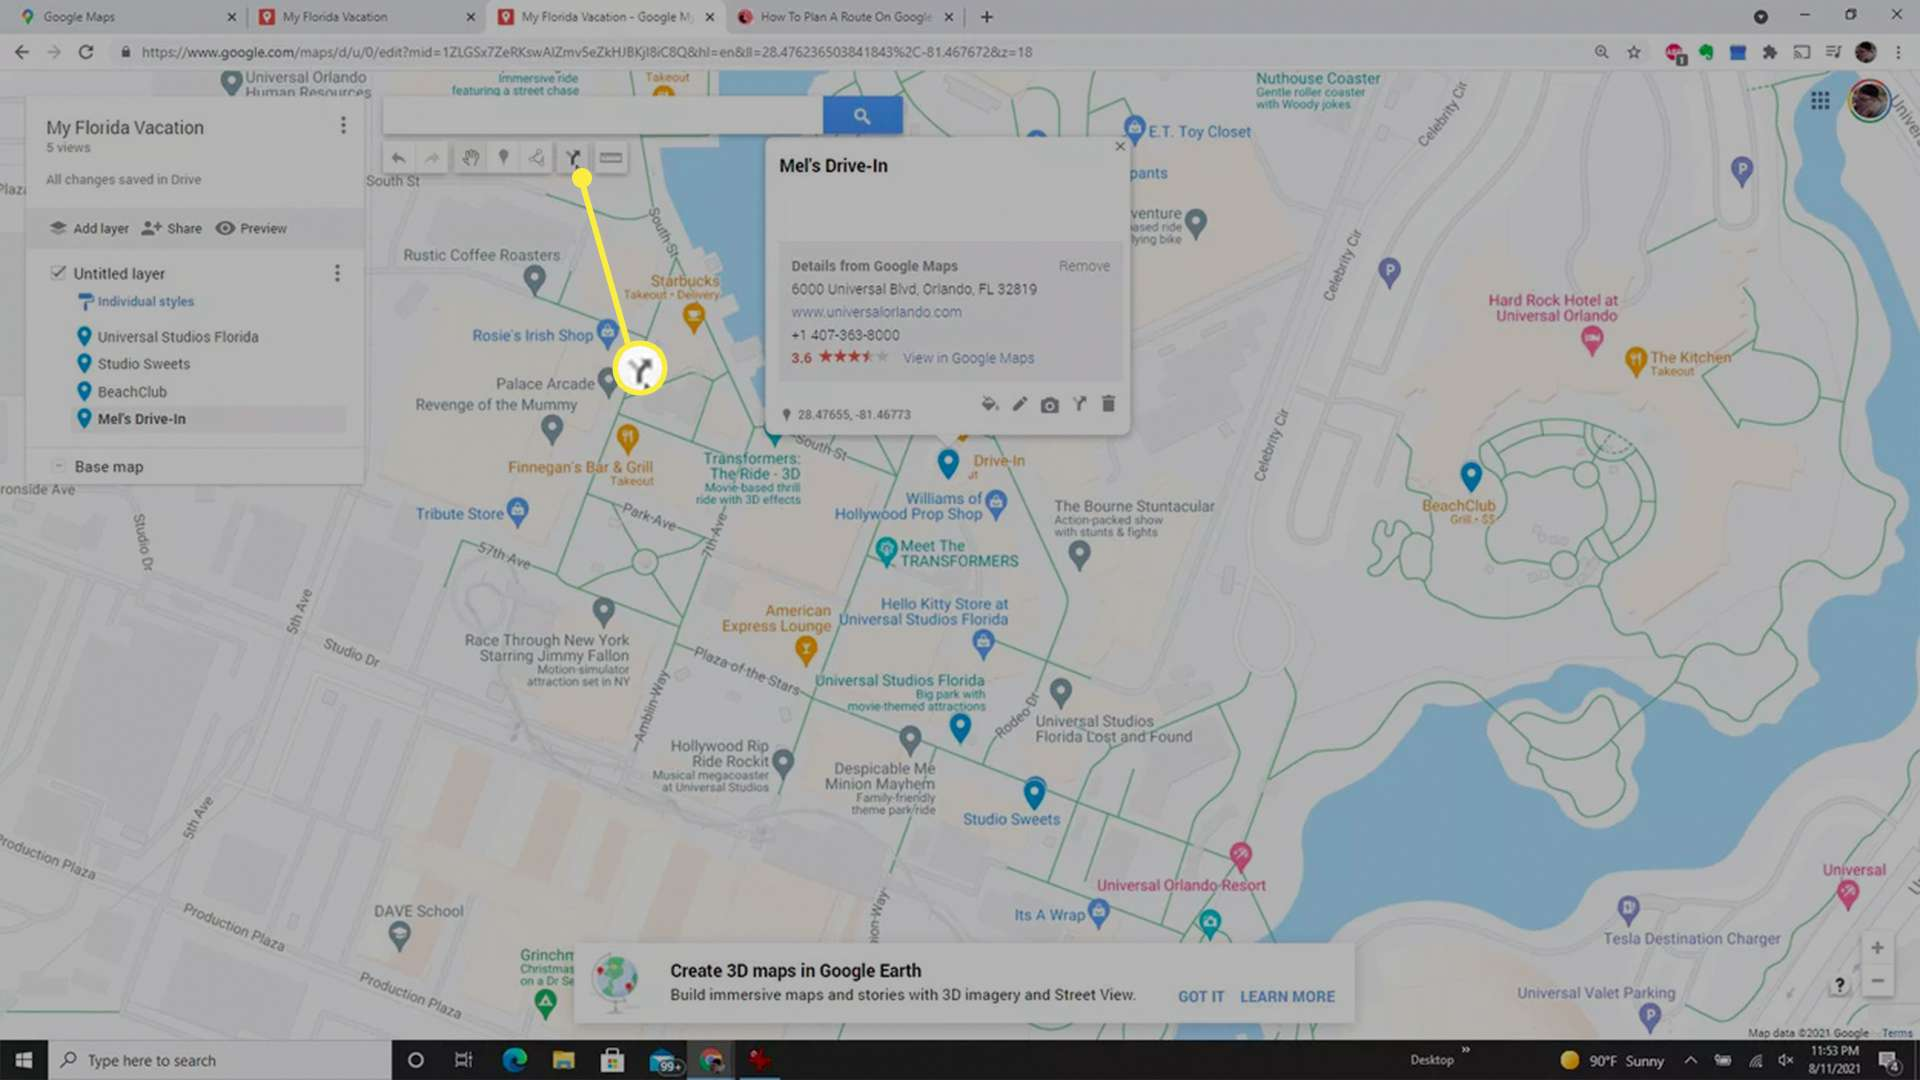 Launching directions in a customized Google Maps map.